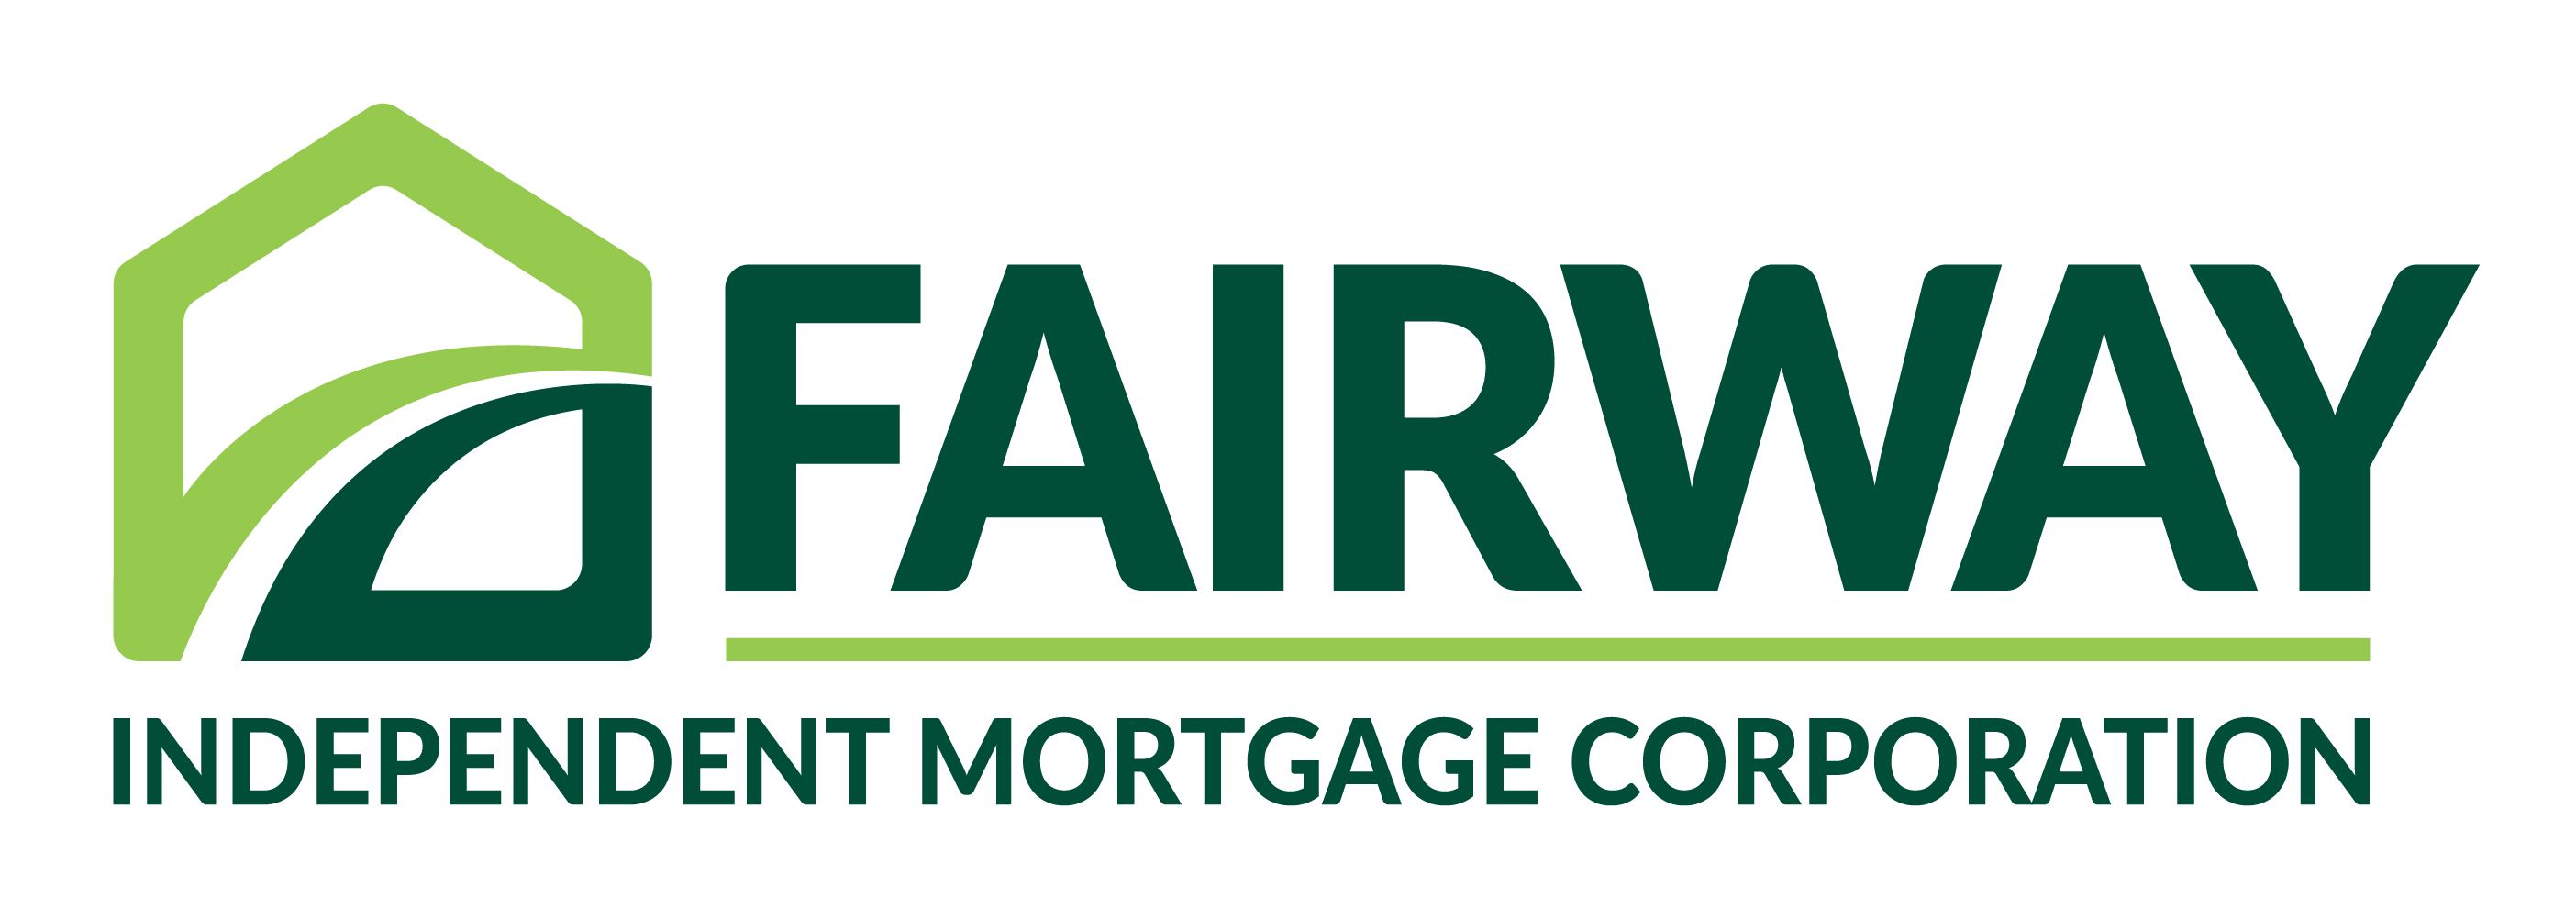 Ezzey Powered Fairway Independent Mortgage Company - PhoenixHomeLoans.com